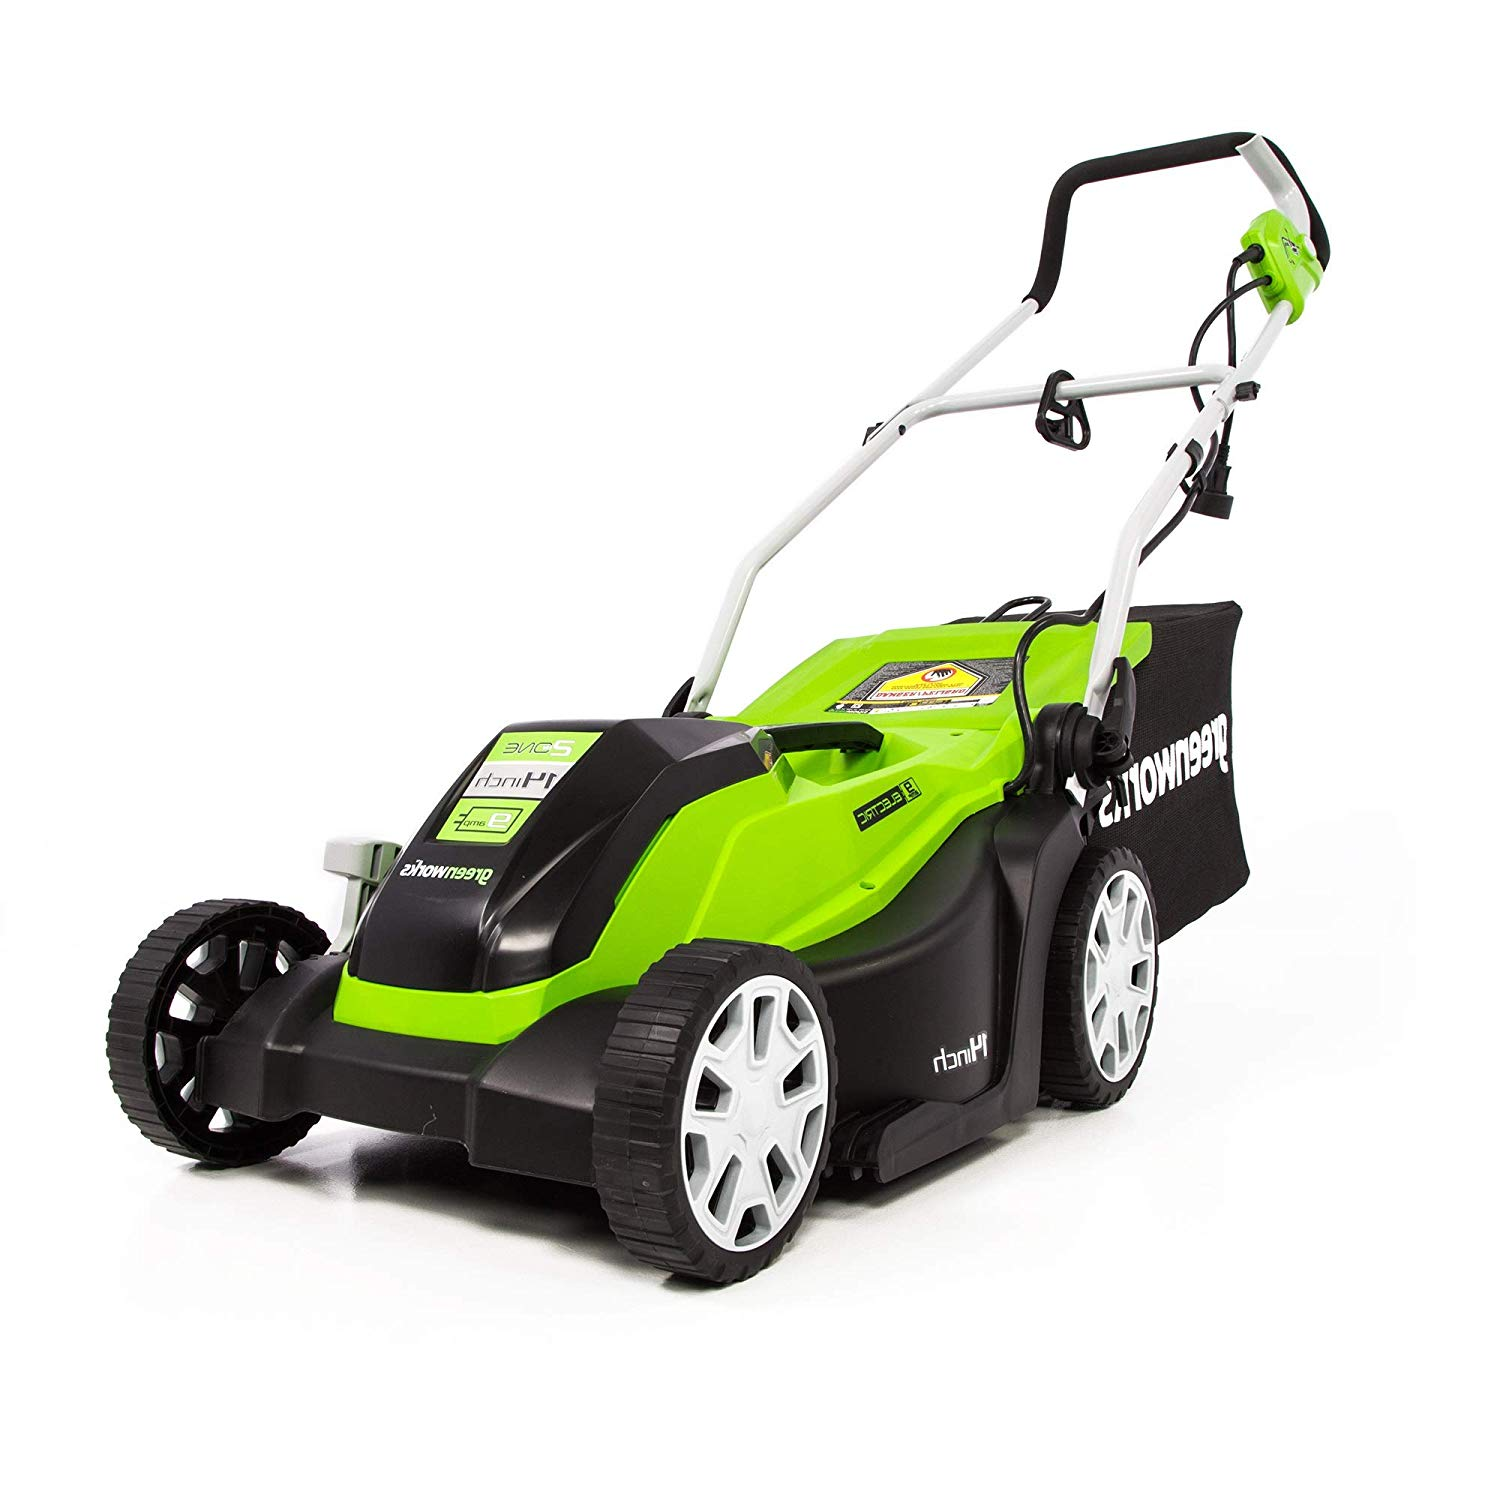 (MO09B01) 14-Inches Corded Electric Mower from Greenworks